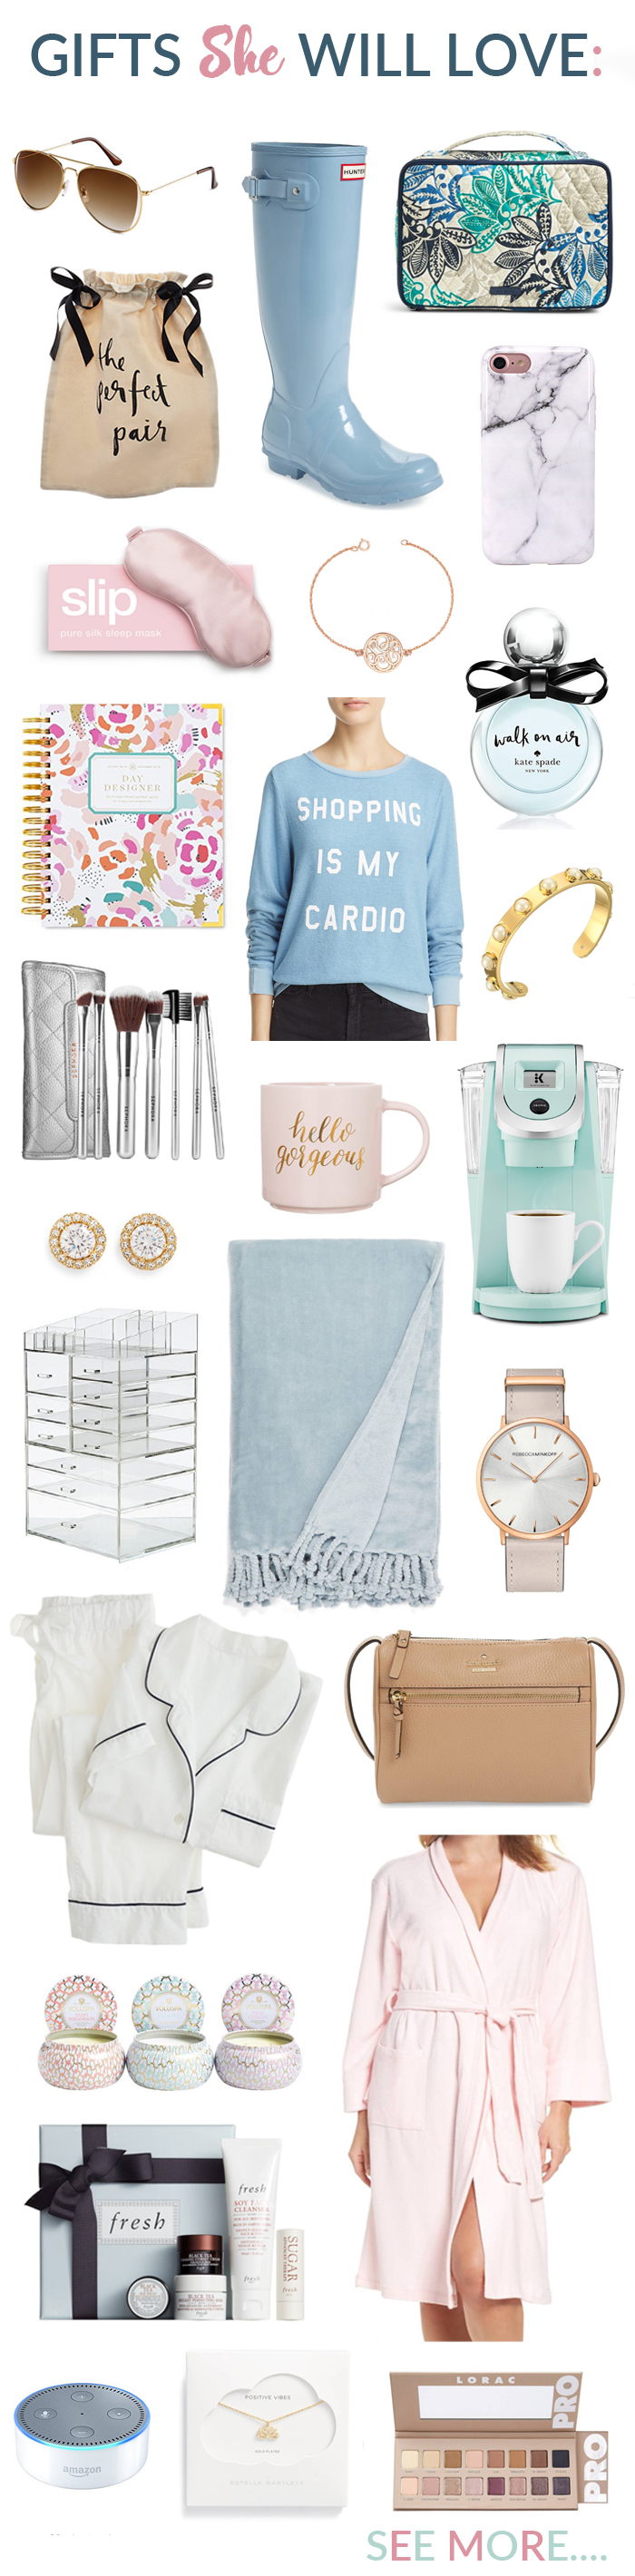 Top Gifts for Her for this Holiday Season More in post!